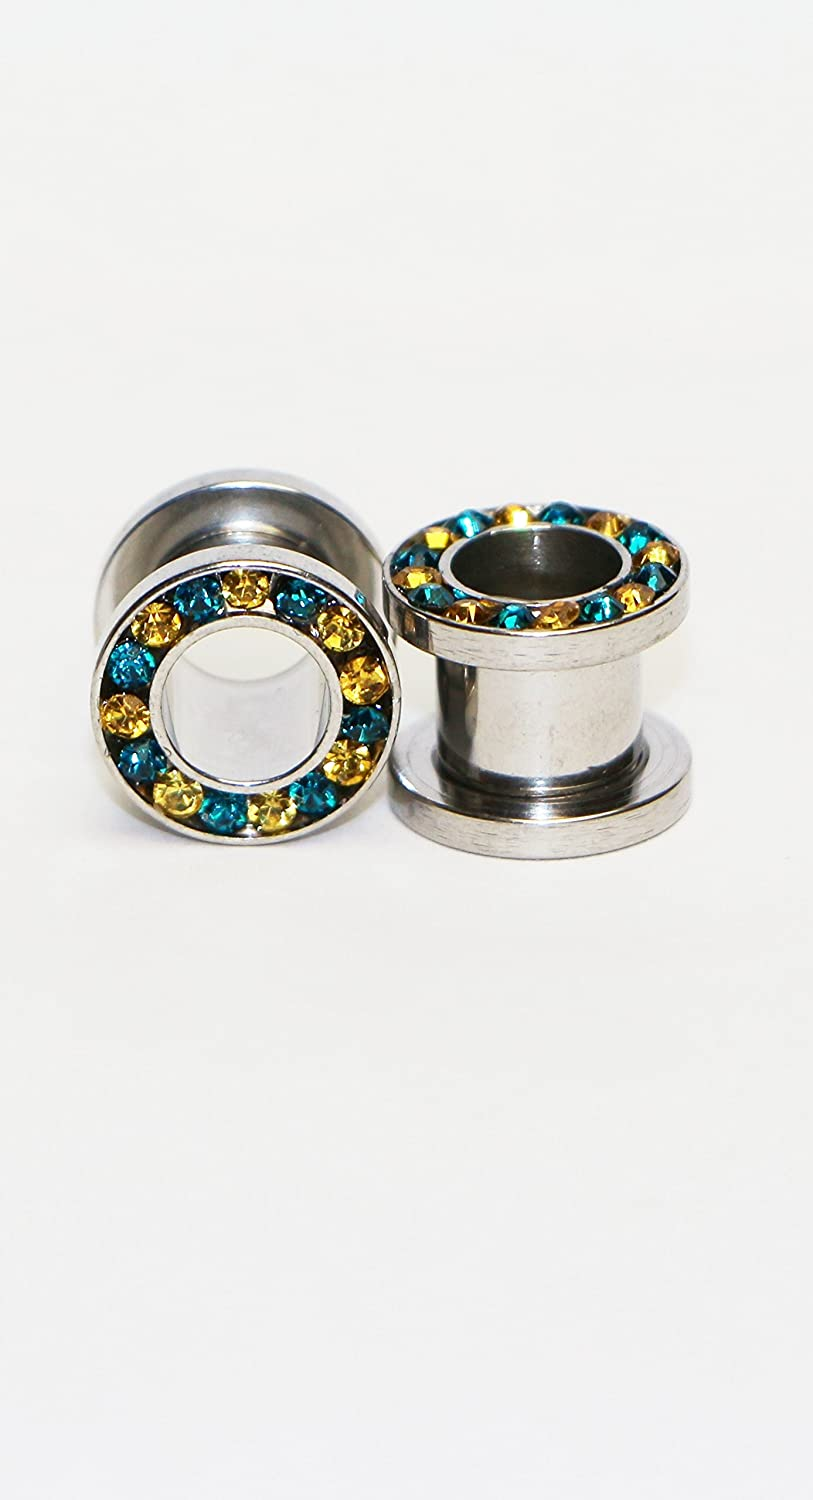 Hypoallergenic Surgical steel Silver Open Ear Gauges rounded w// Yellow and Aqua stones